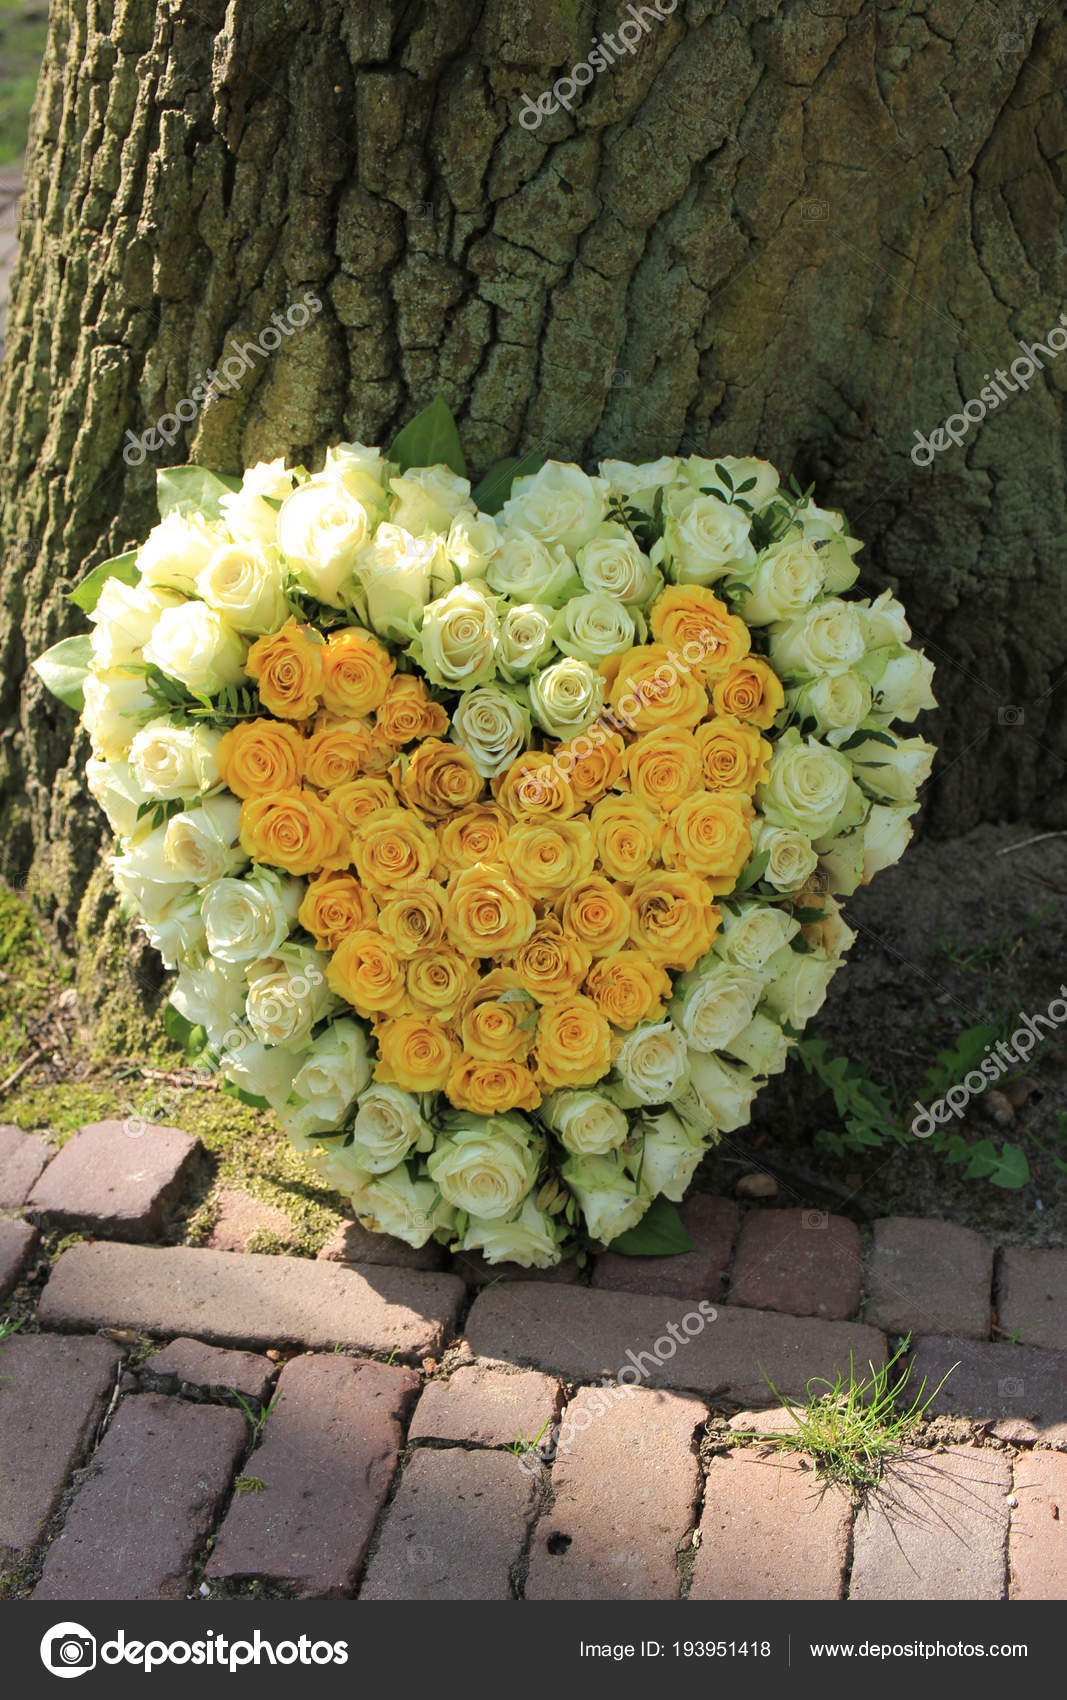 Sympathy flowers near a tree stock photo portosabbia 193951418 heart shaped sympathy flowers or funeral flowers near a tree white and yellow roses photo by portosabbia izmirmasajfo